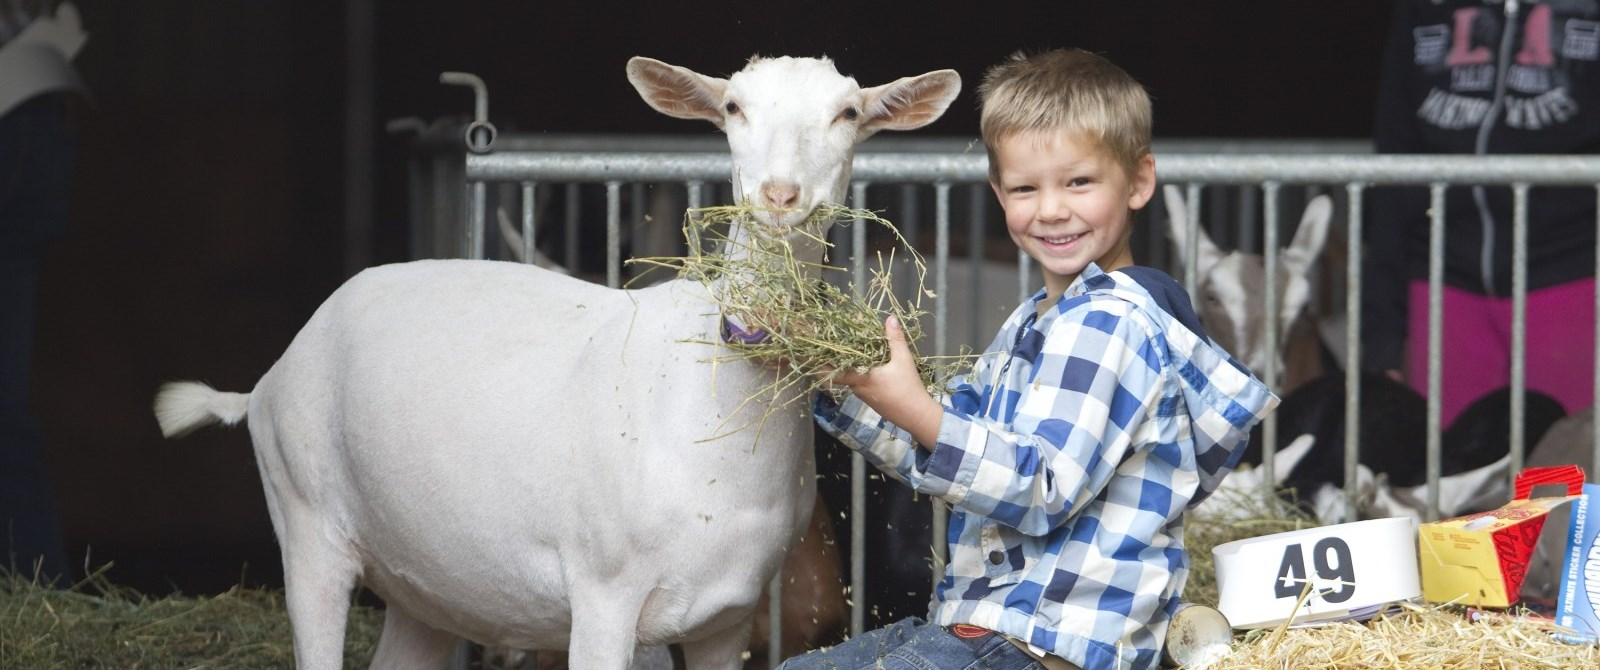 Child with goat at the fair